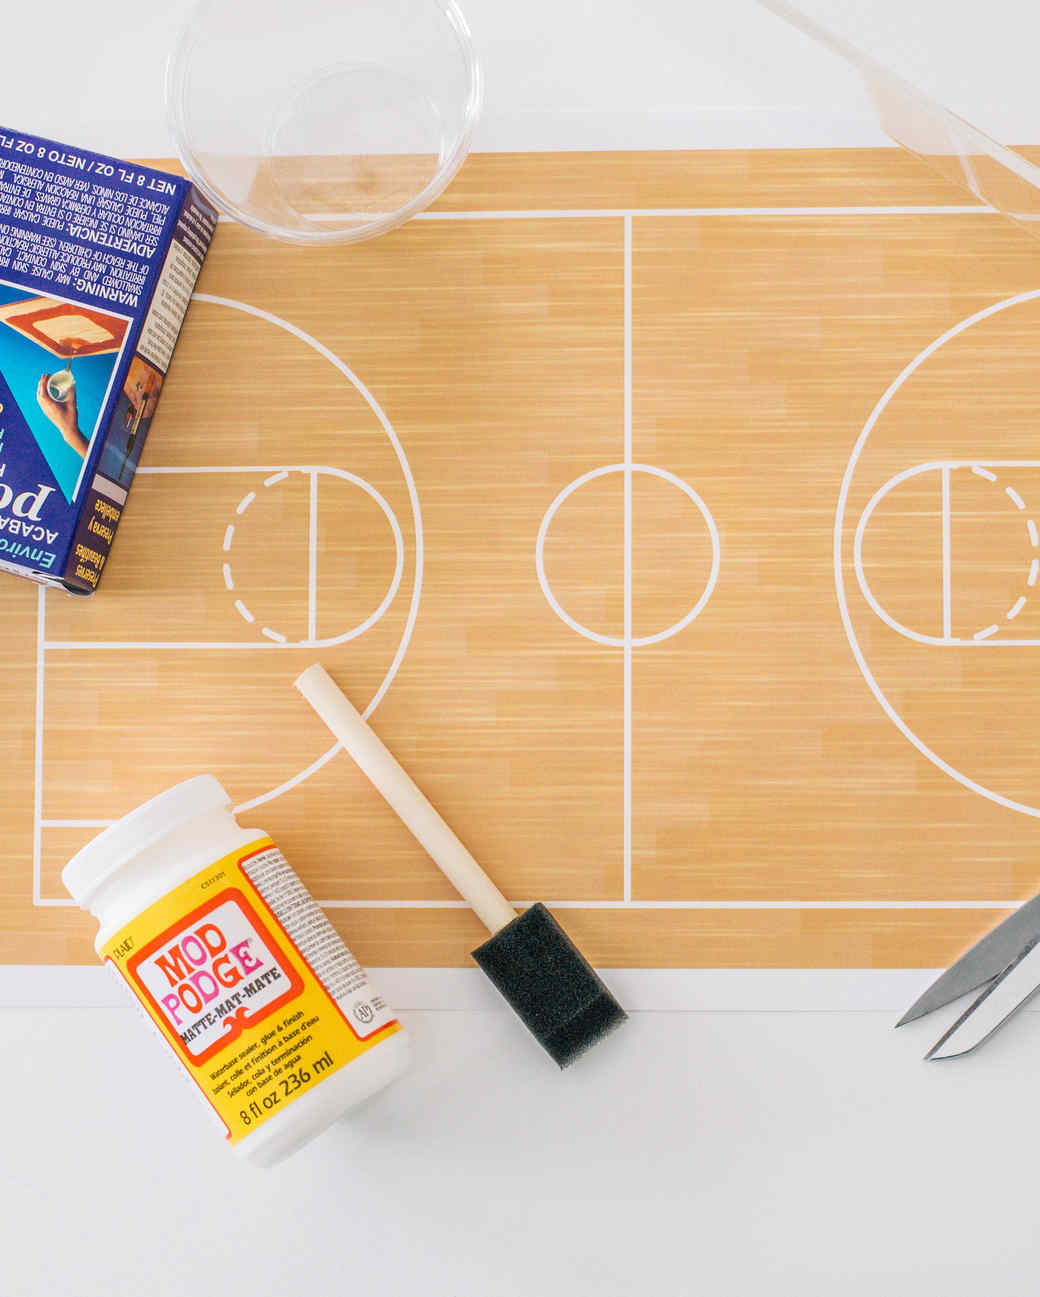 march madness basketball court serving tray materials